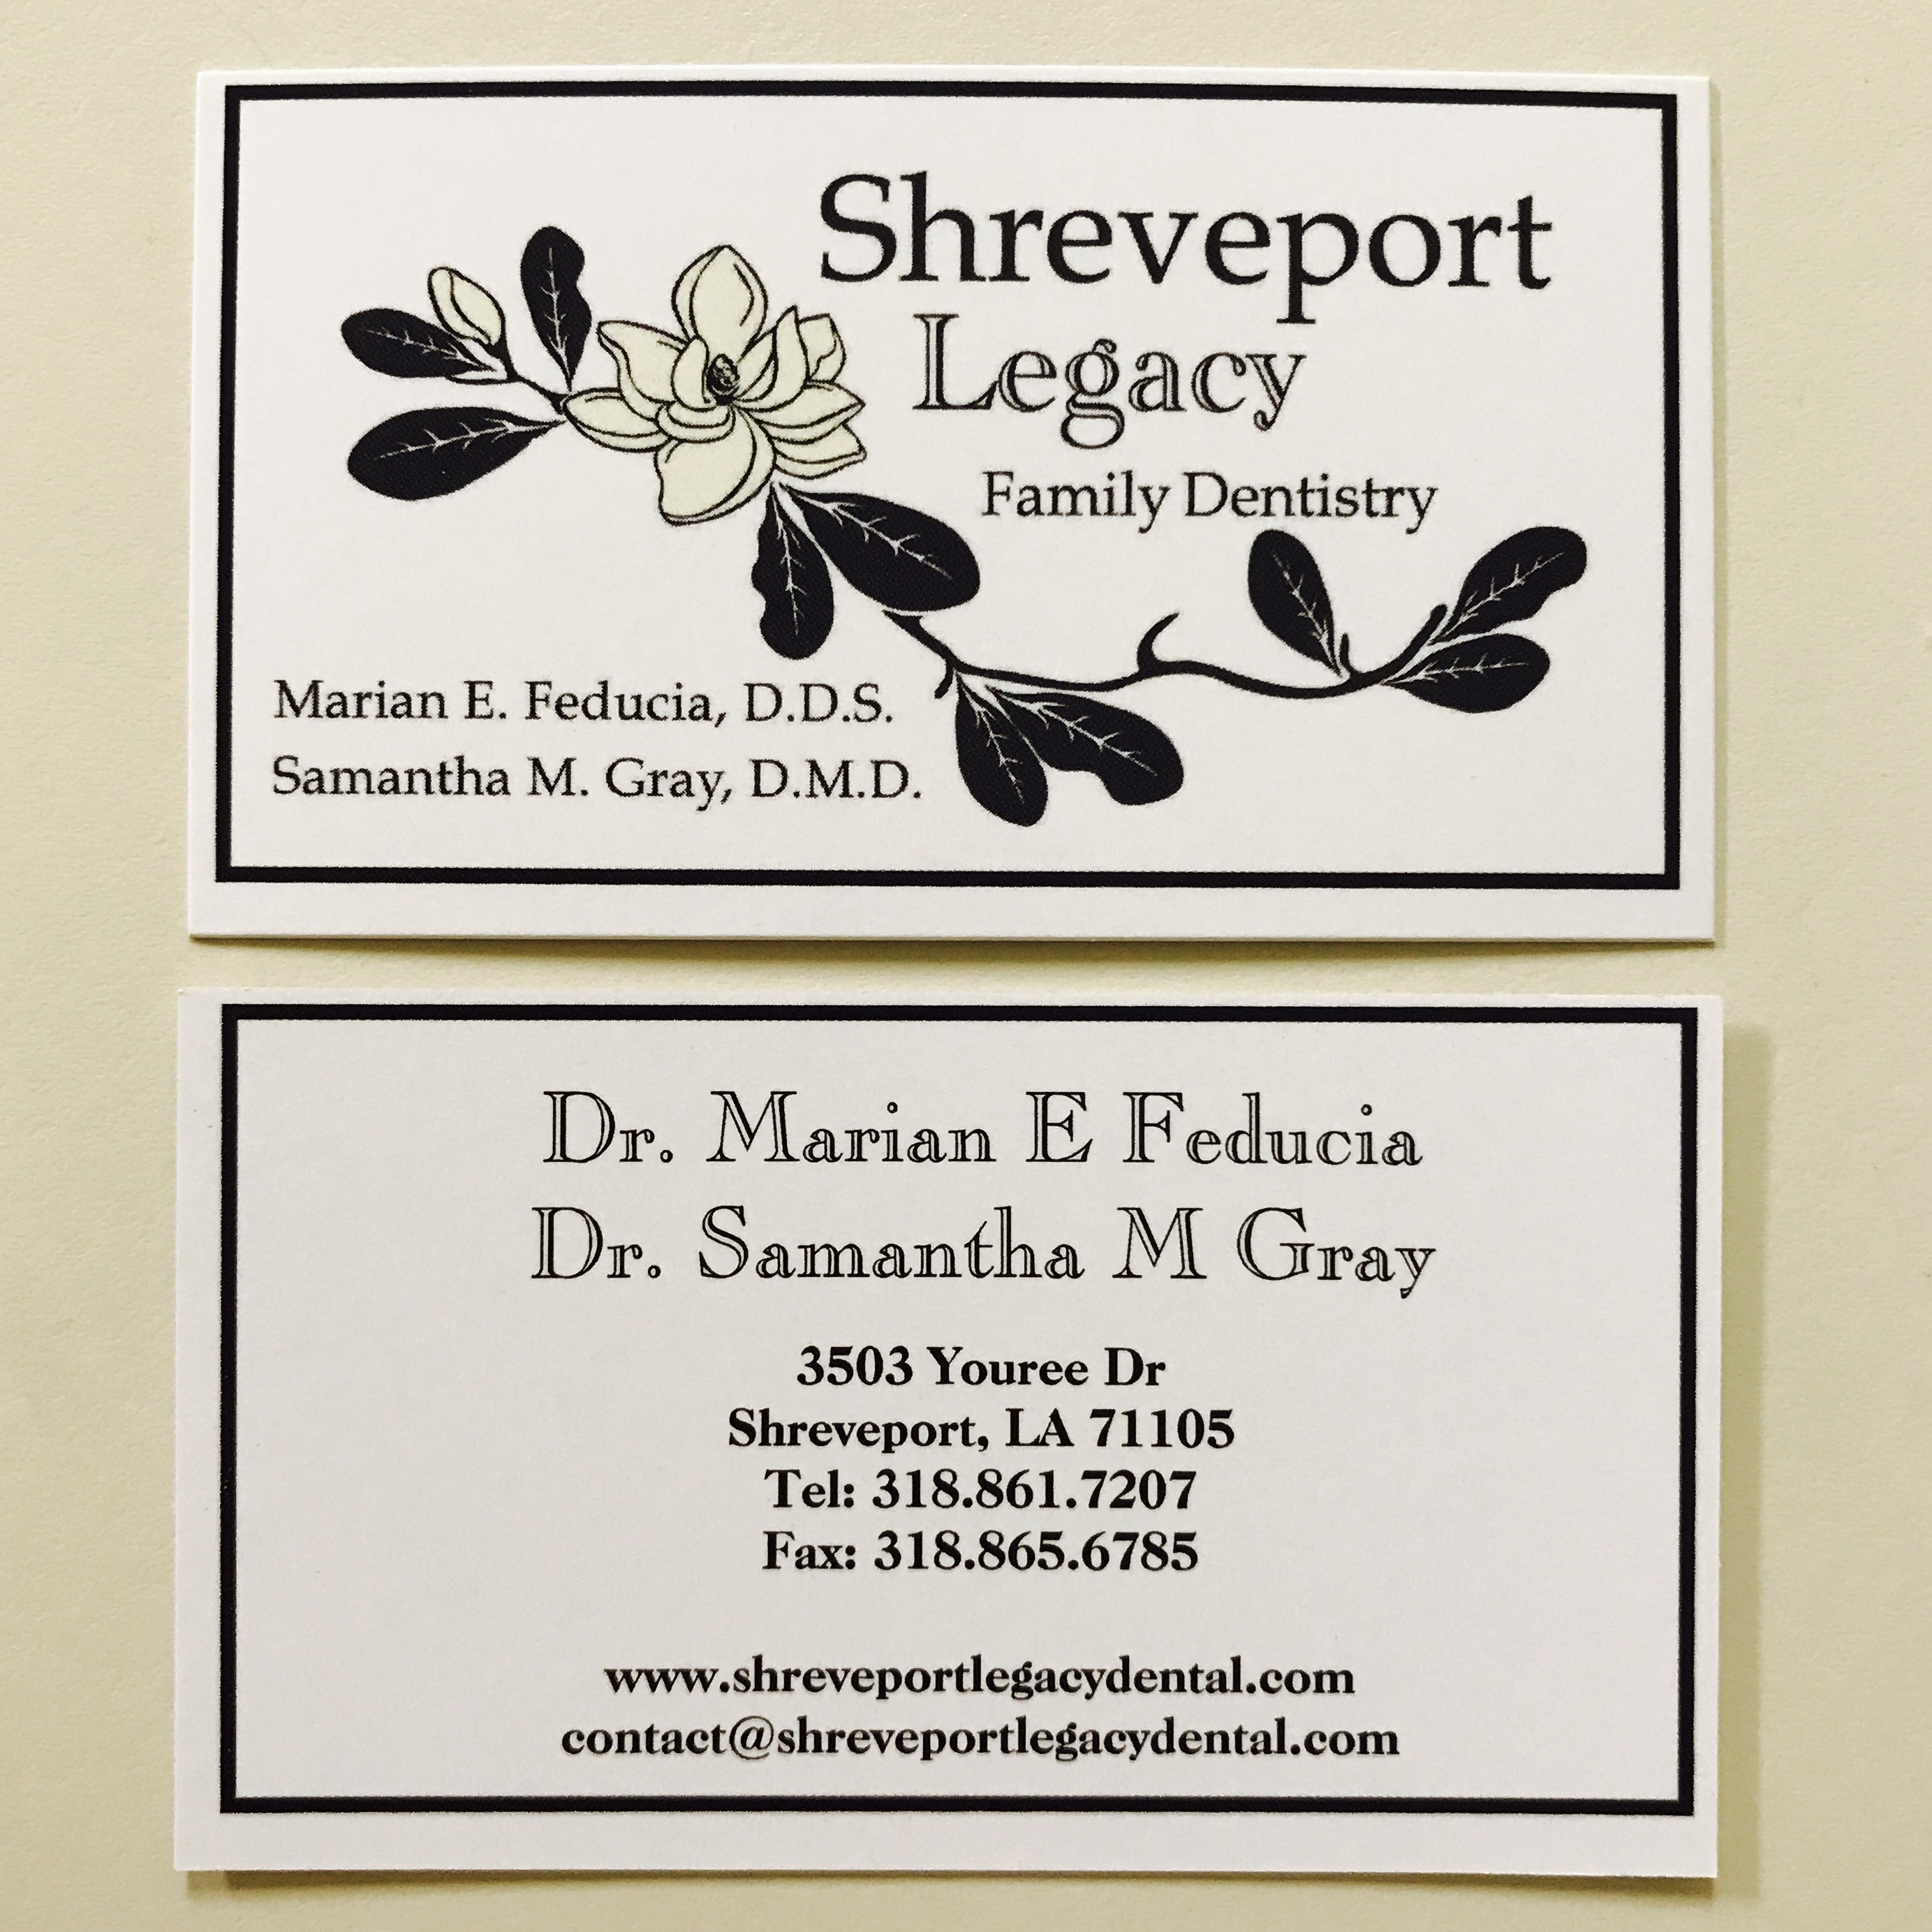 Blog youree dr shreveport legacy family dentistry in addition to new business cards we have a beautiful new sign for the waiting room and our chairs are now a shiny navy reheart Image collections